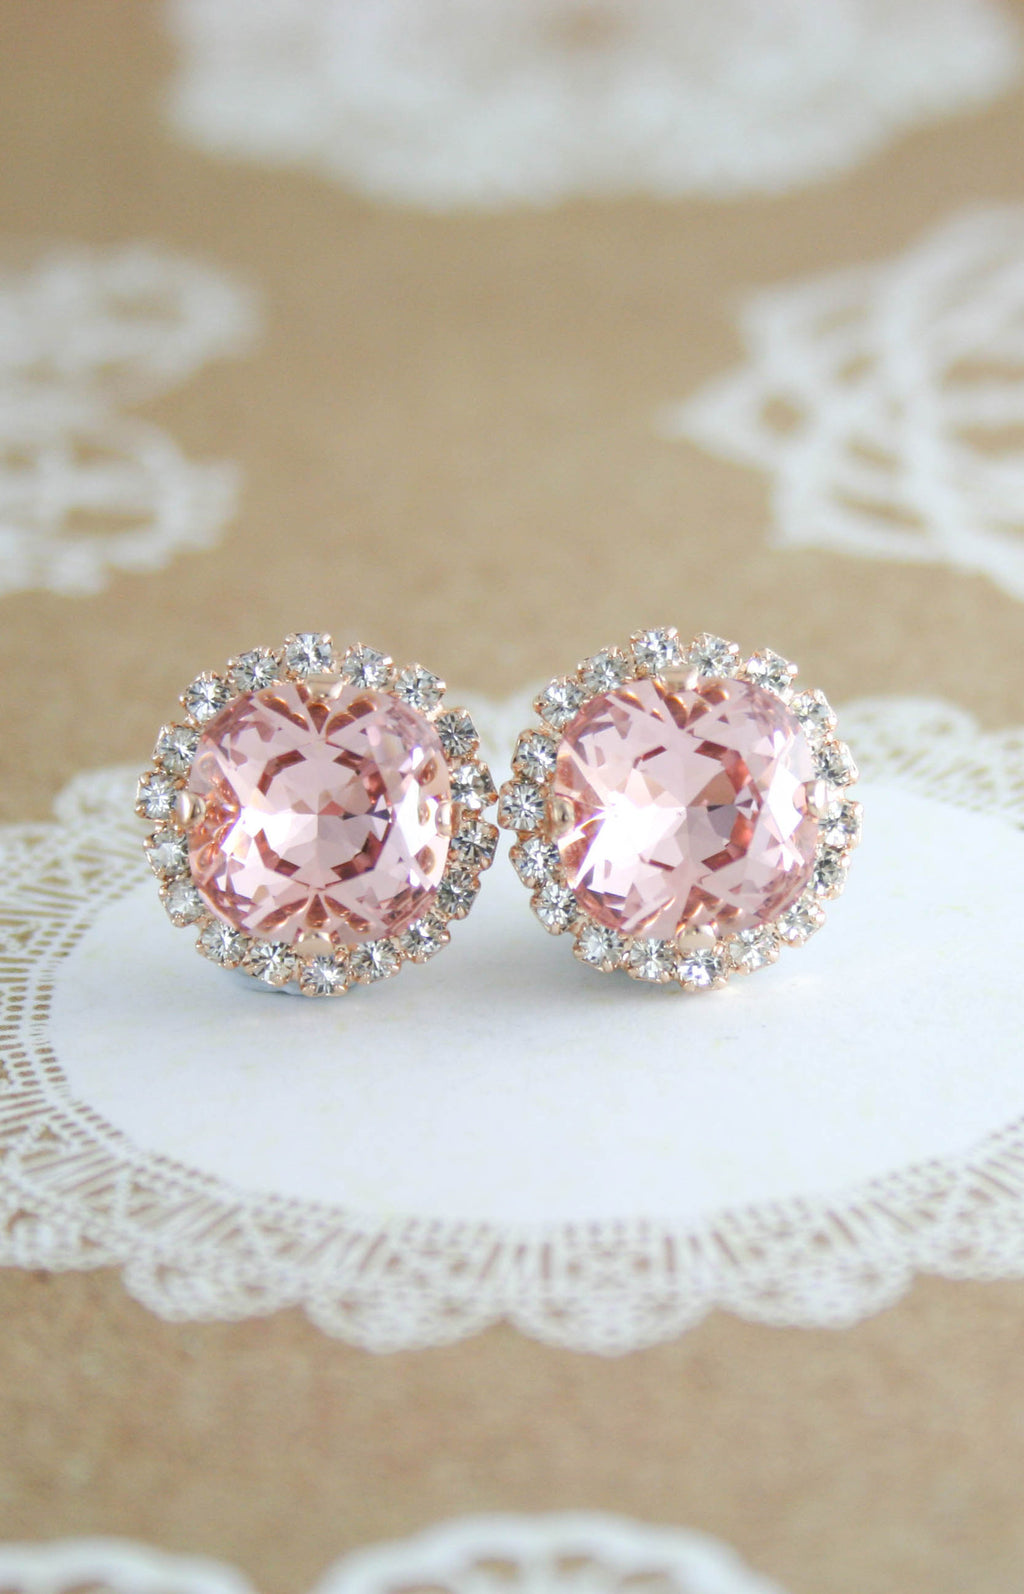 Jessica Halo earrings | Swarovski crystal | 12mm Square Vintage rose and clear crystal accent